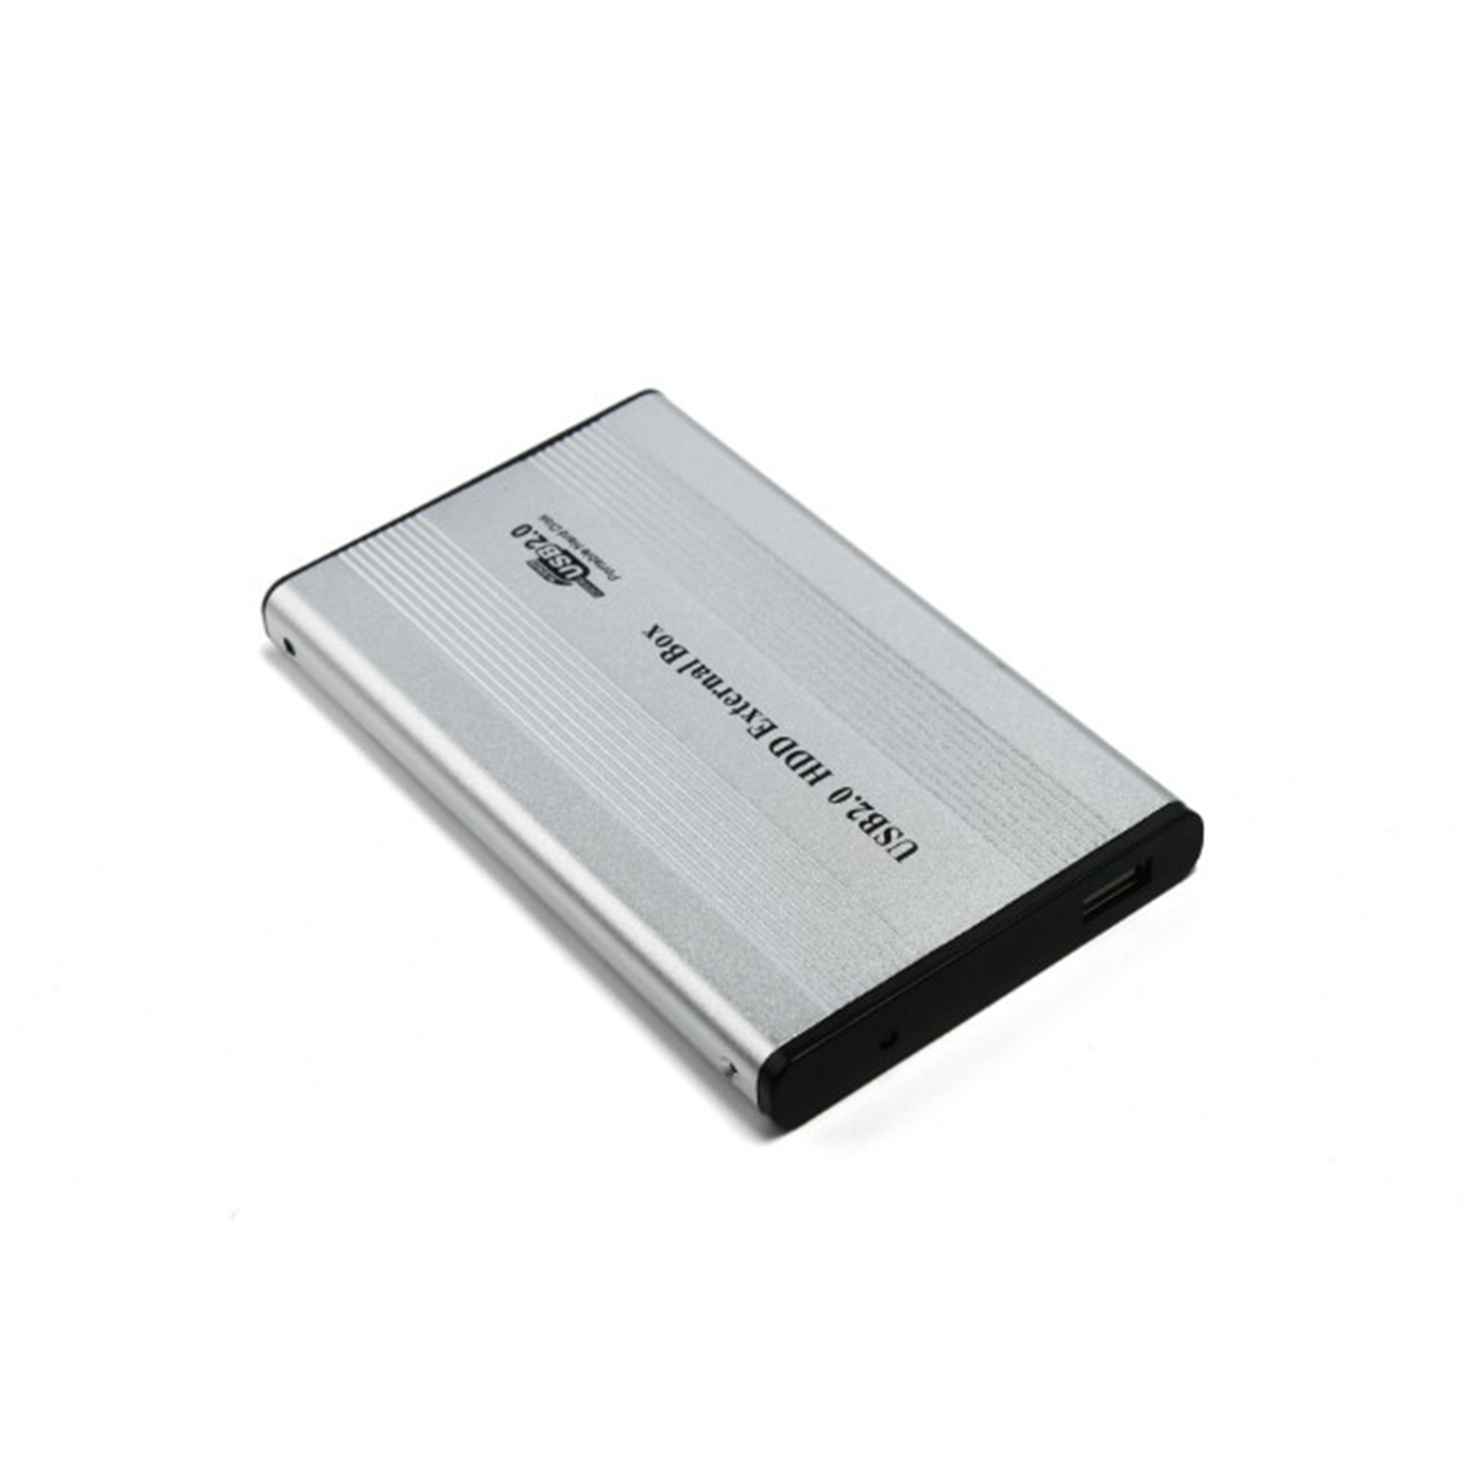 2.5 inch HDD IDE External Case Color : Silver Silver